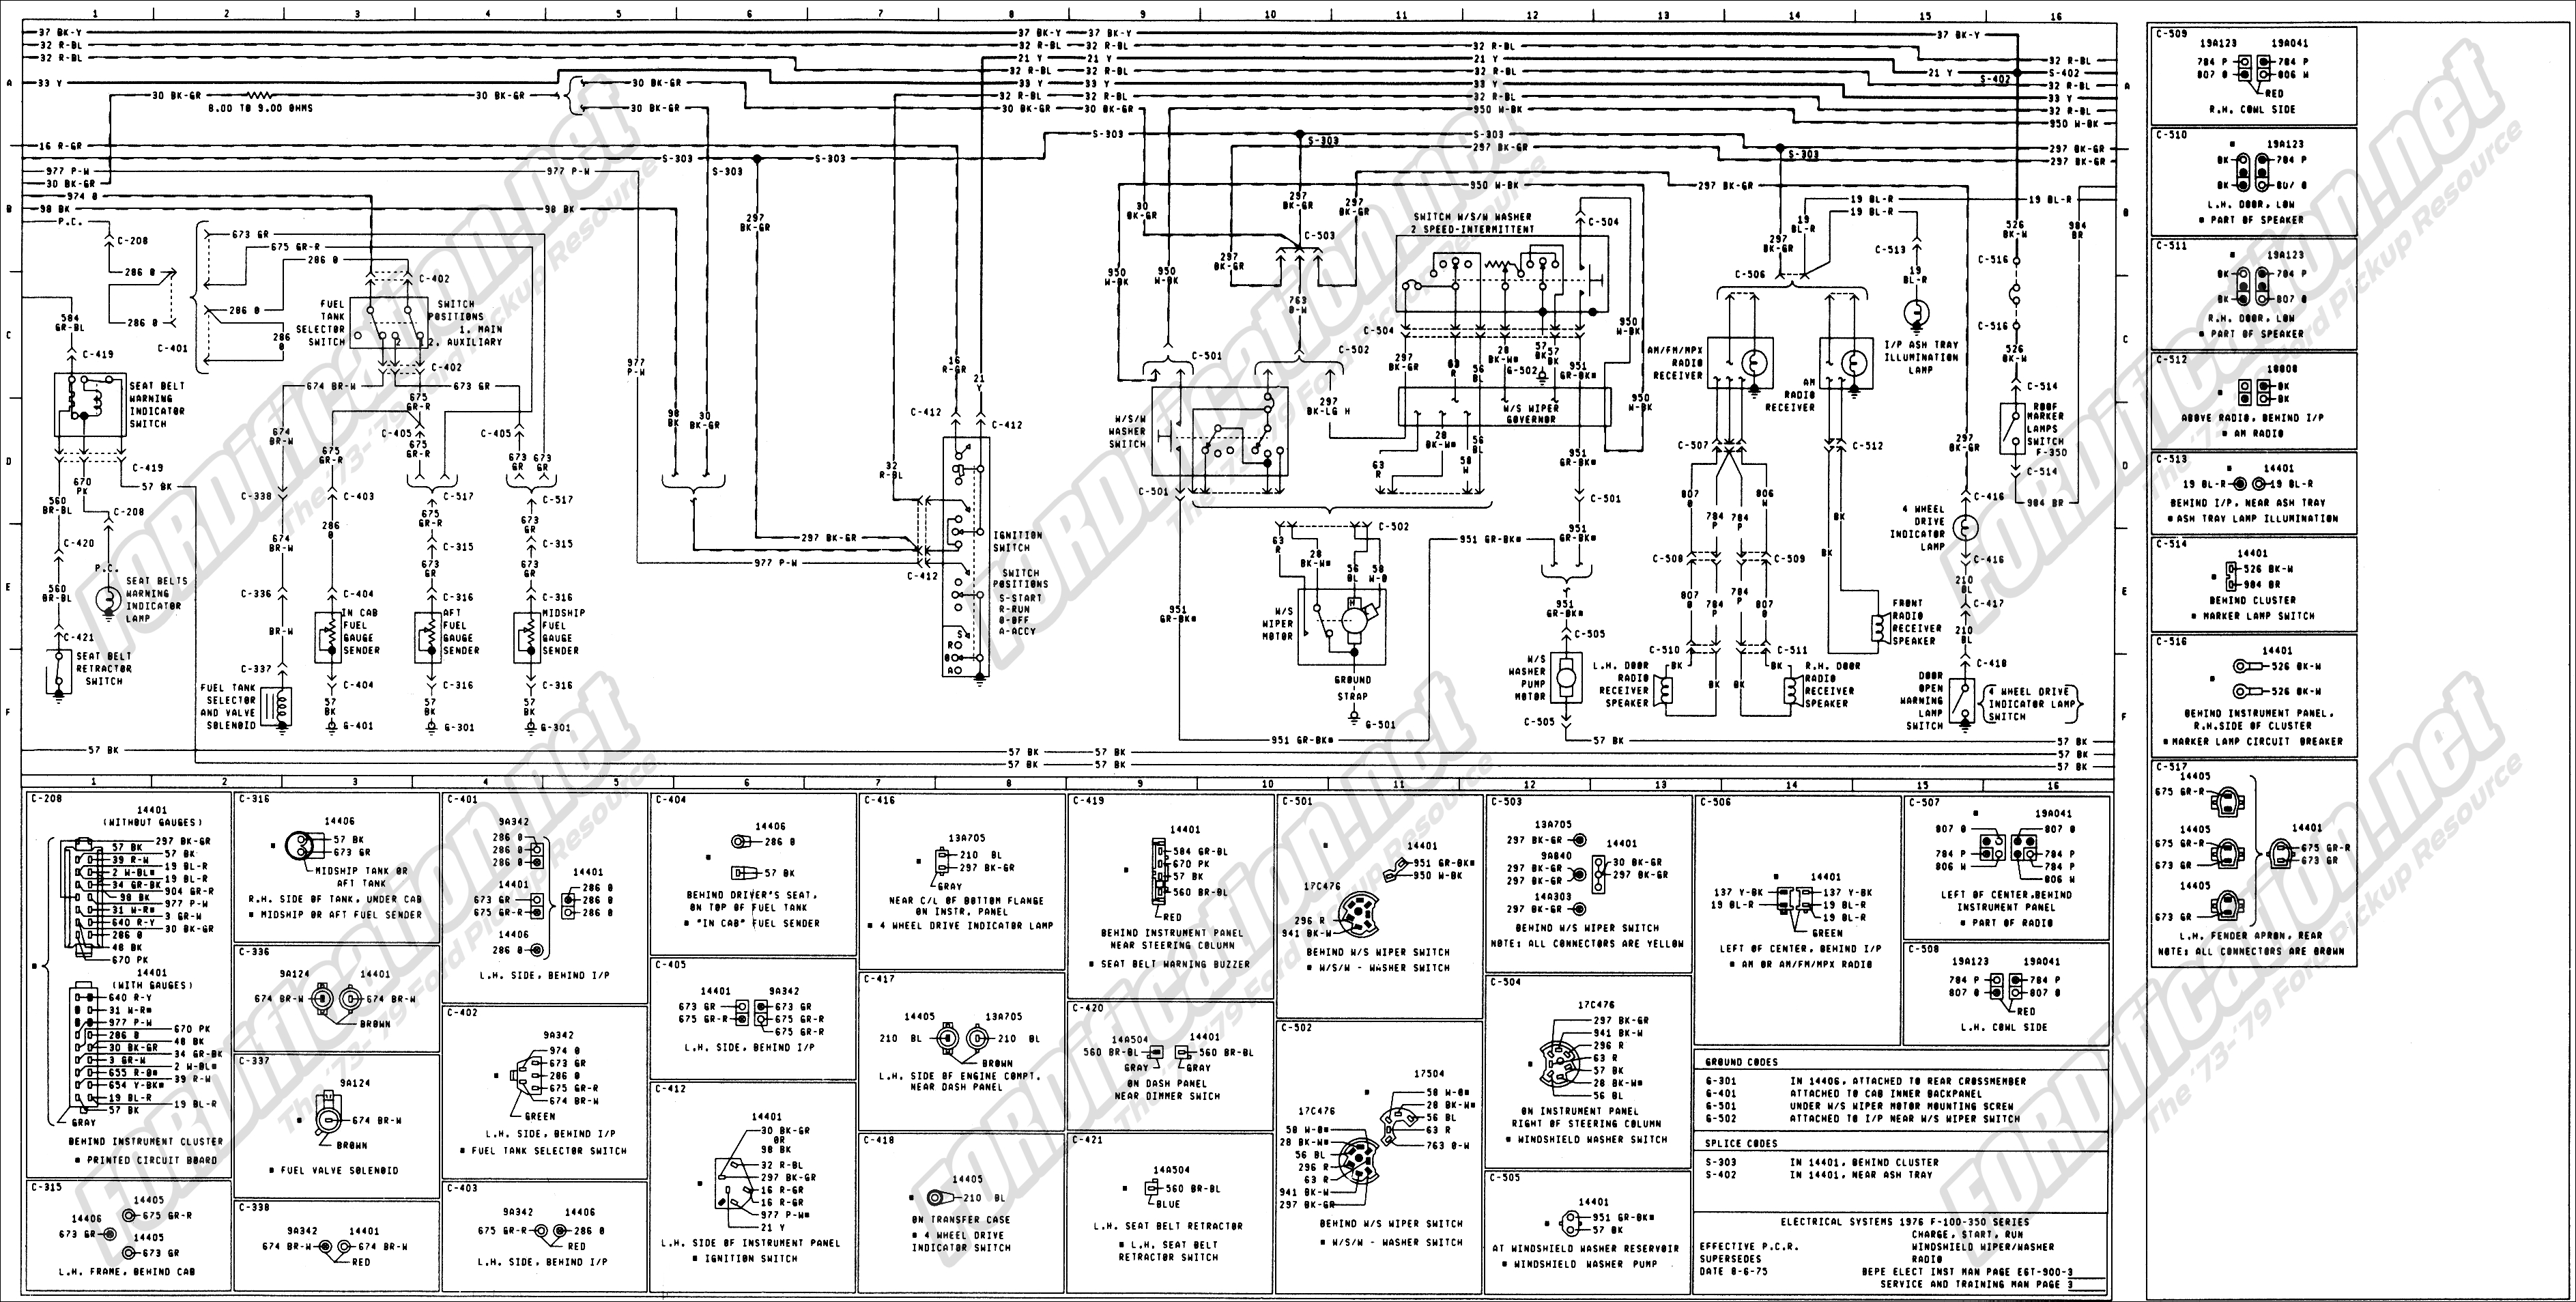 1955 Ford Horn Wiring Diagram | Wiring Library - Hella Trailer Wiring Diagram